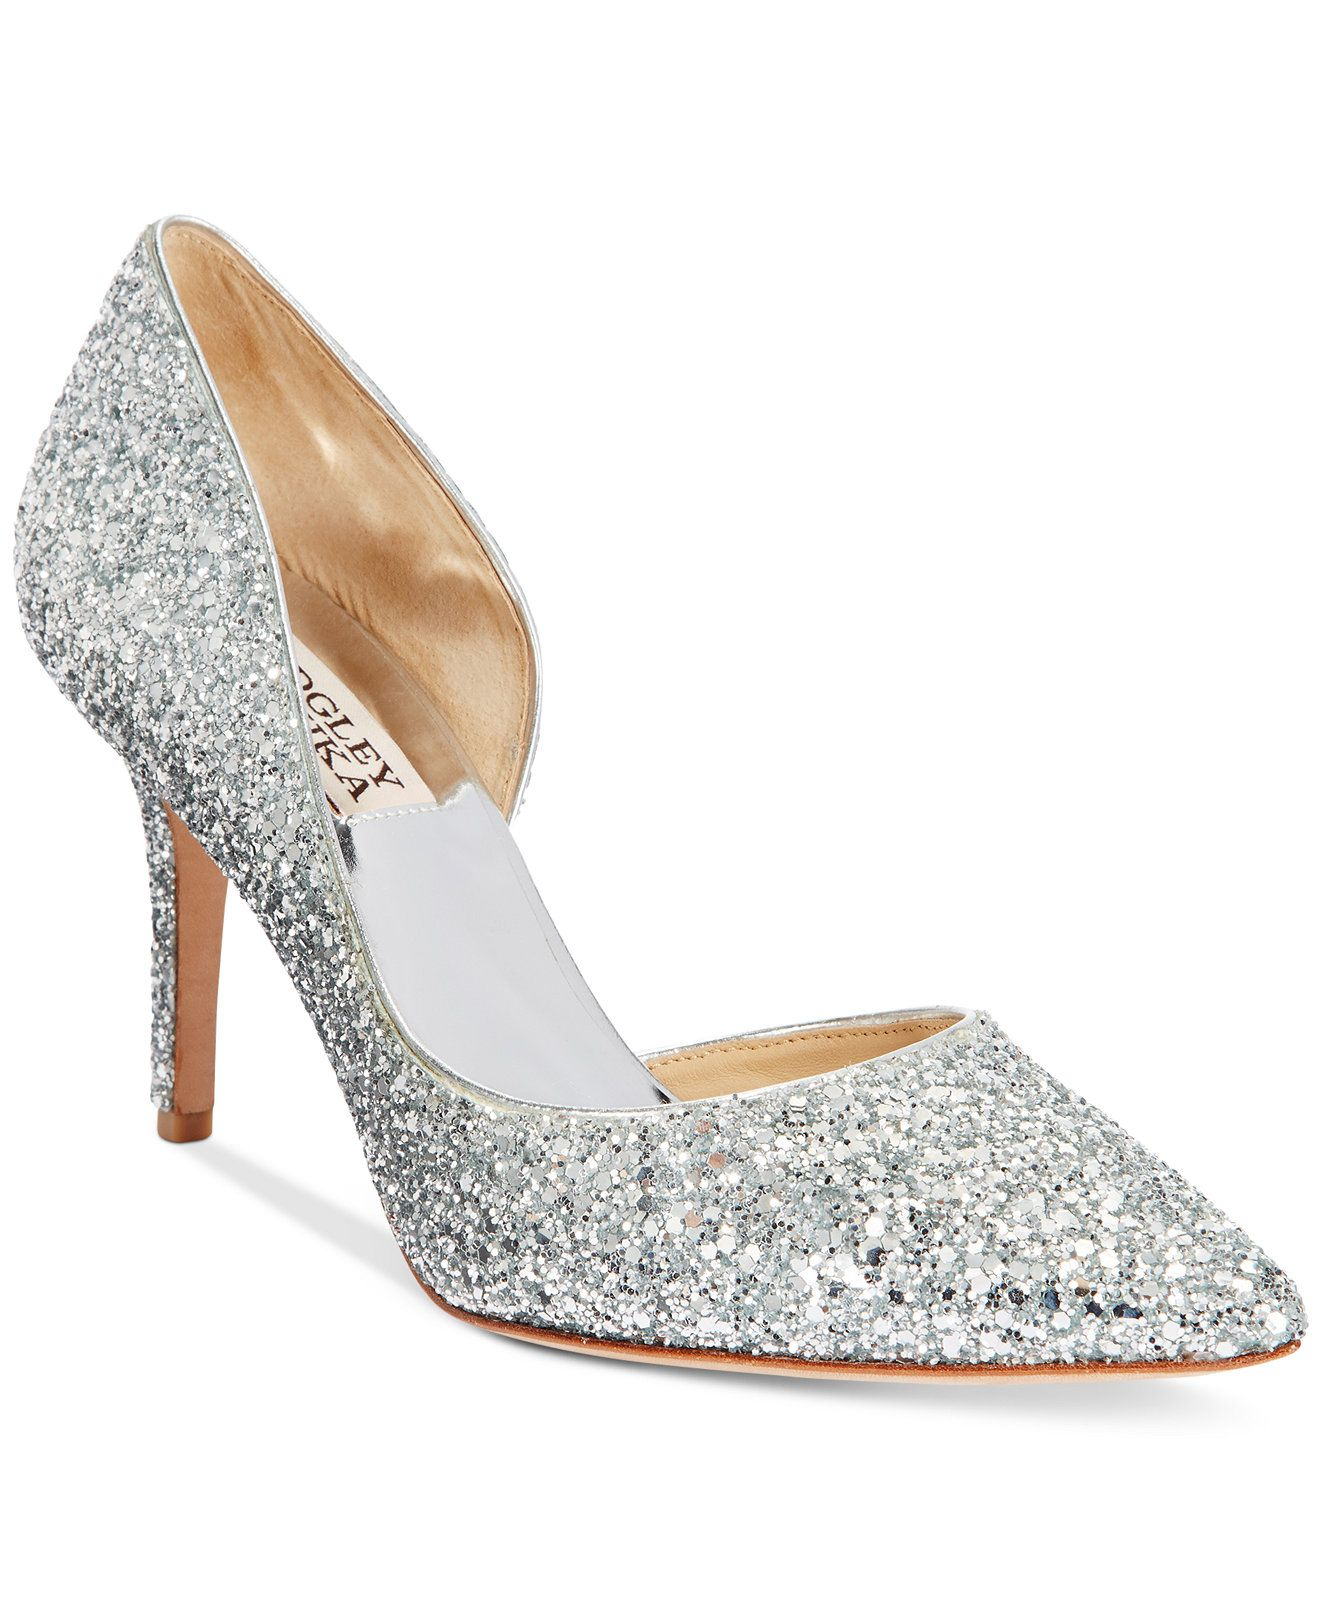 Badgley Mischka Daisy D'Orsay Pumps - Pumps - Shoes - Macy's